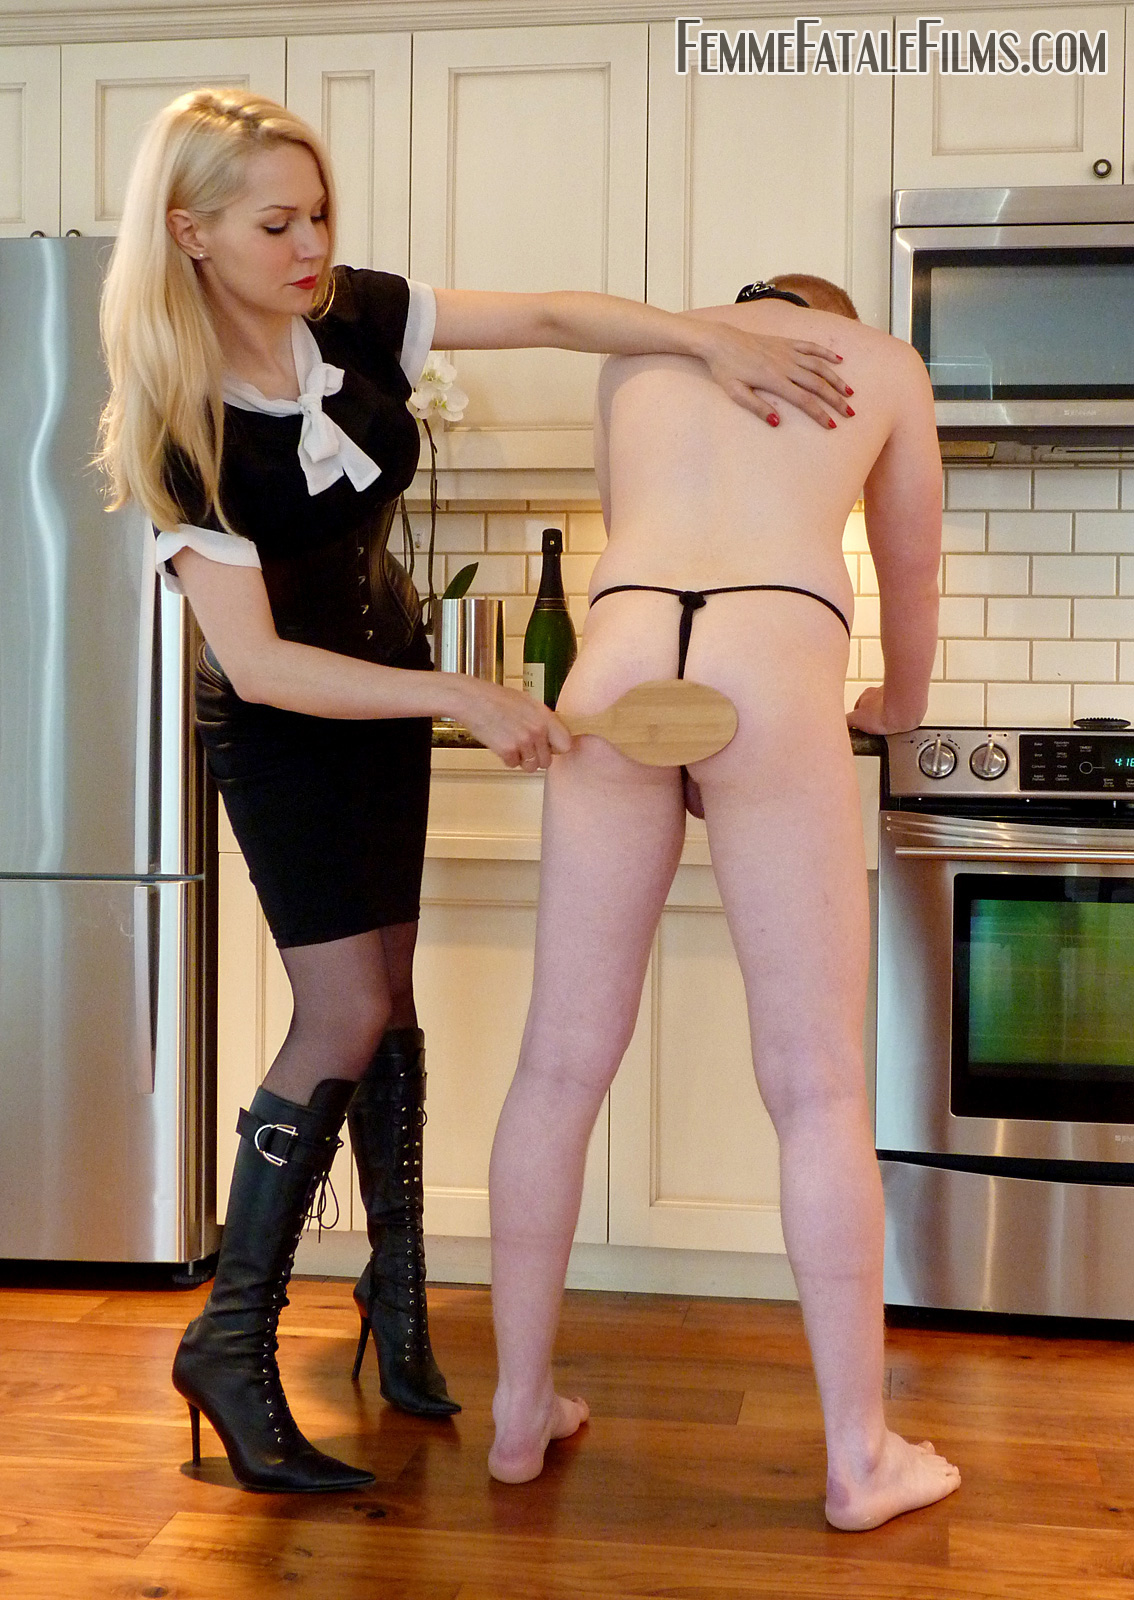 Spanking Galleries  spanking corporal punishment and